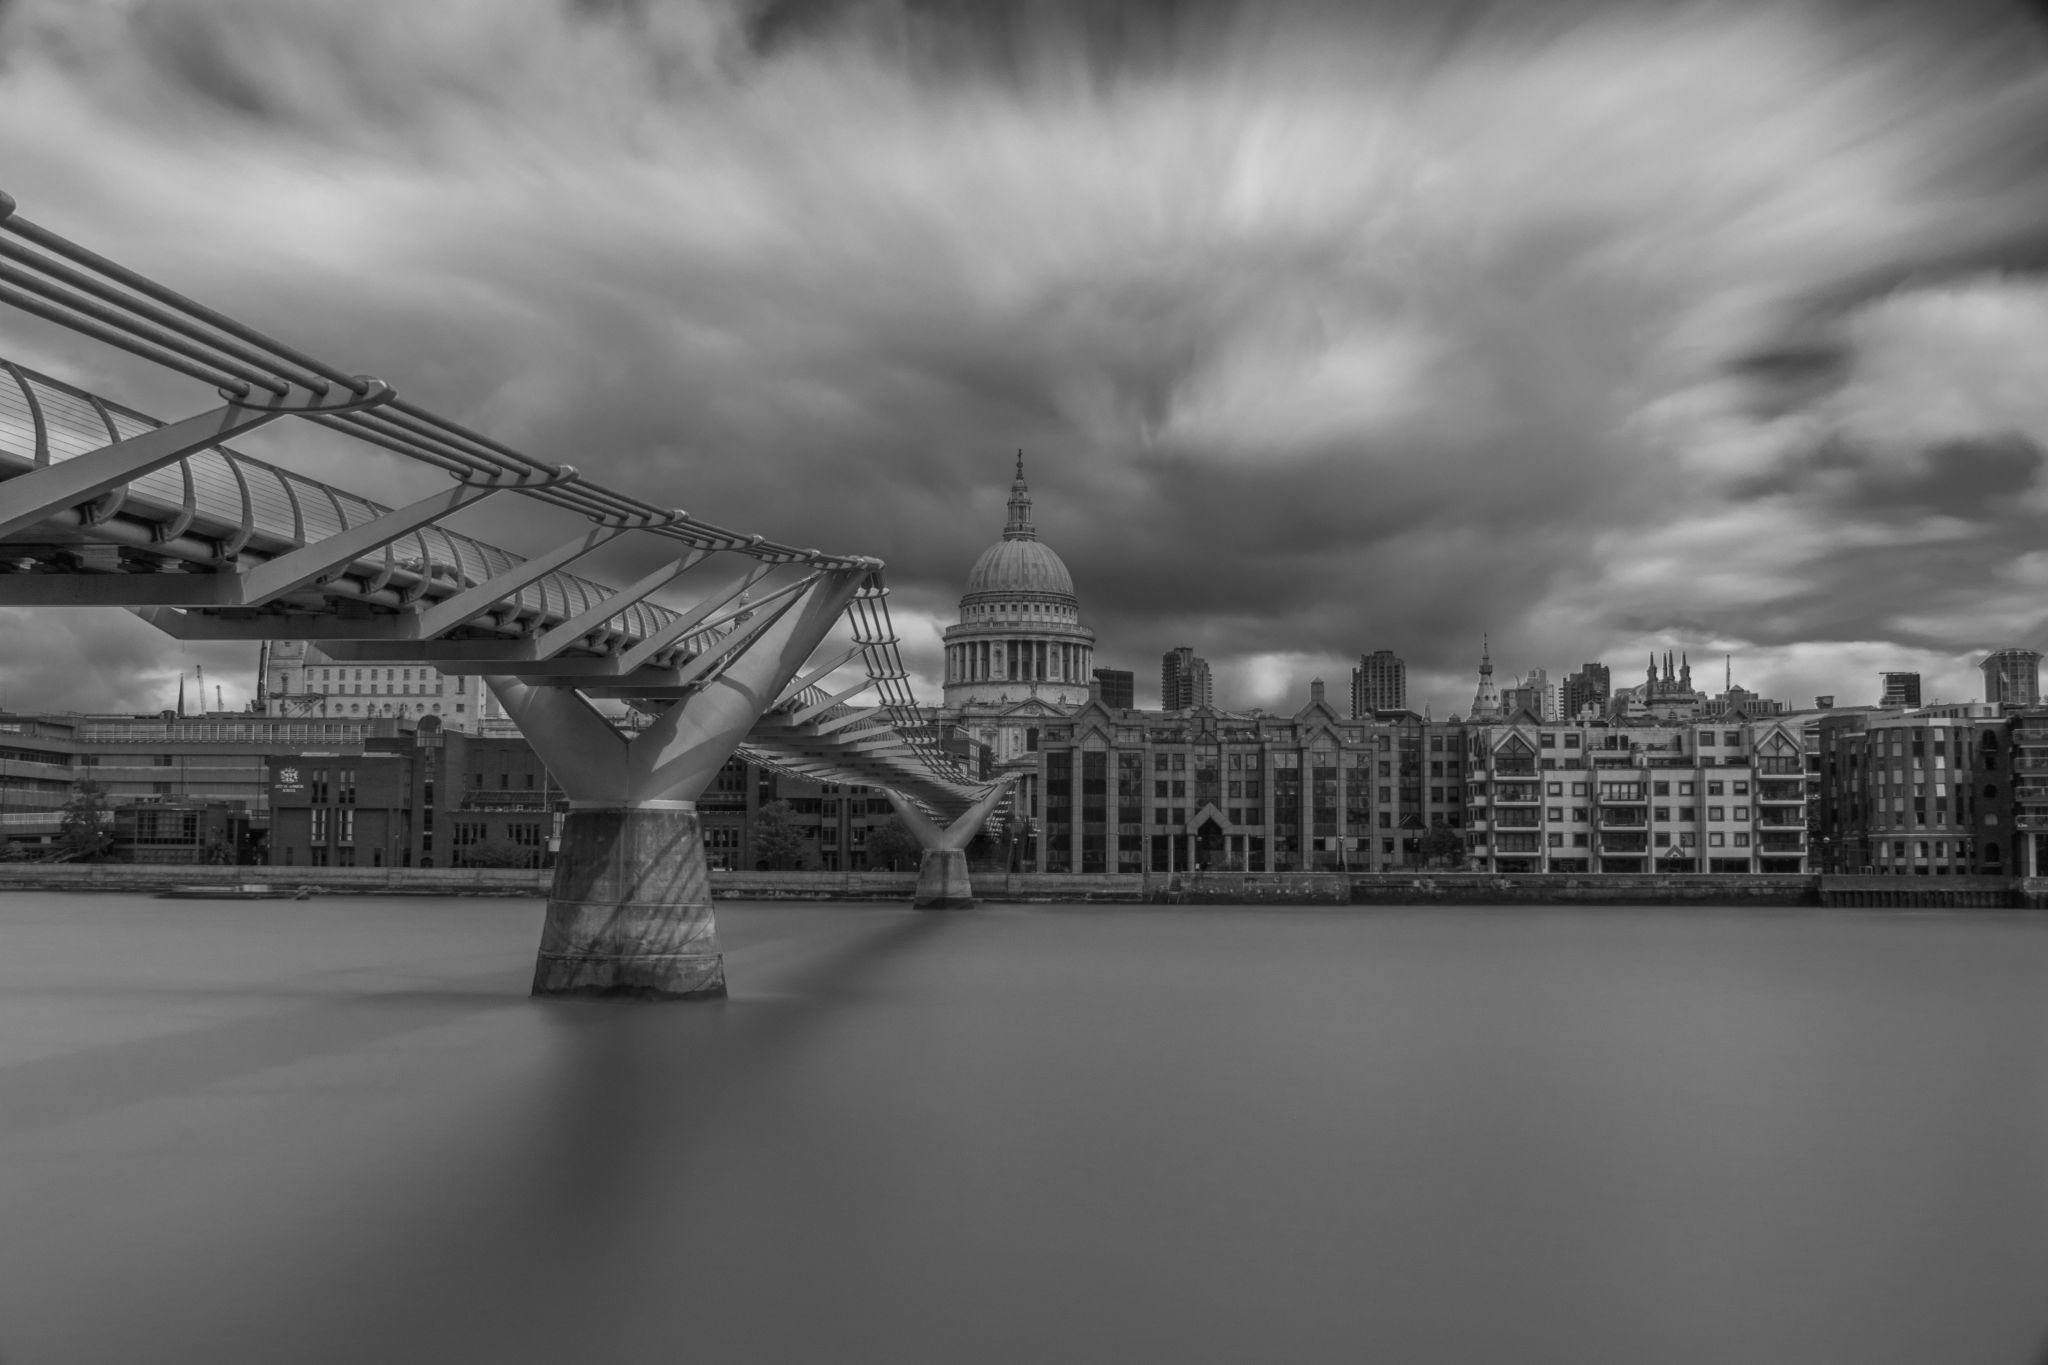 Millennium Bridge and St Paul's, United Kingdom